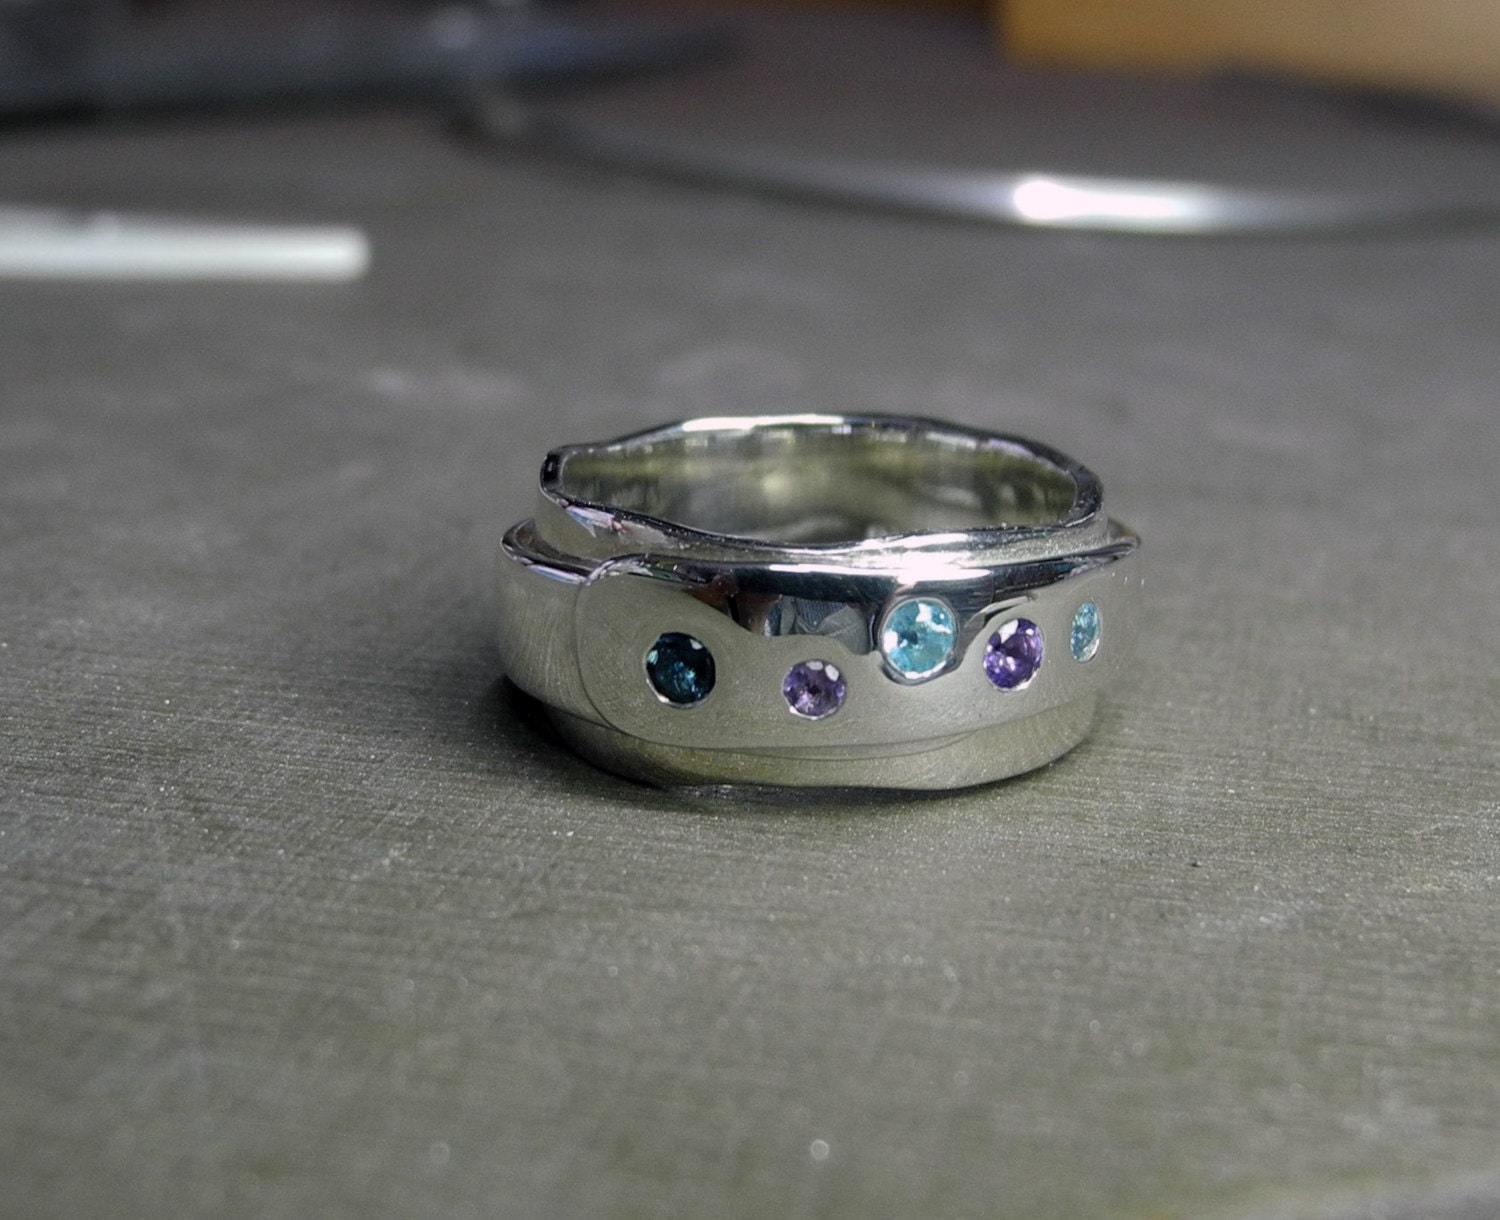 Wrapt Ring with amethyst topaz and aquamarine